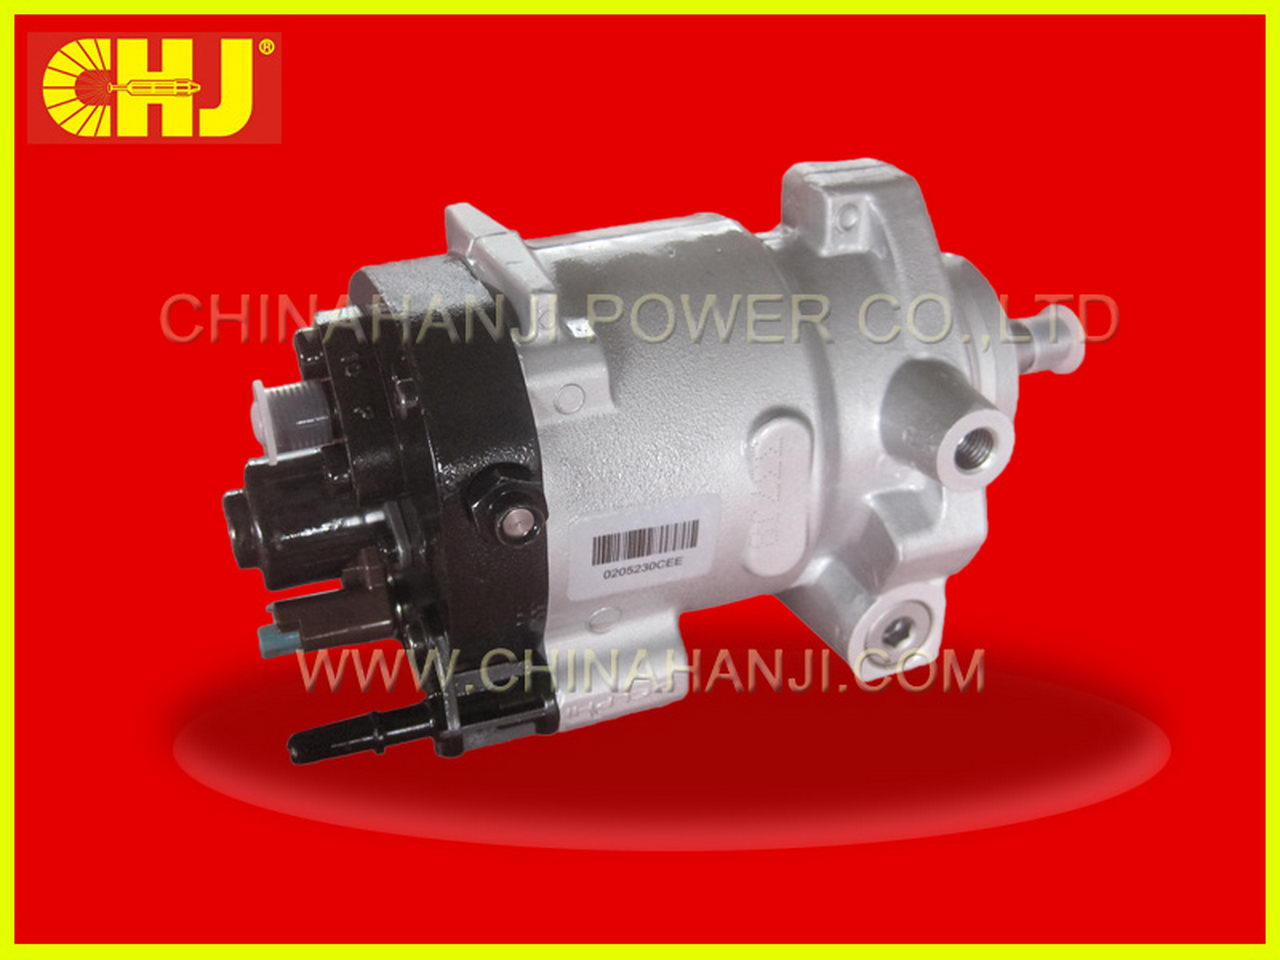 Car,Marine,Pump,Diesel,Engine,Motor,fuel pump,8n7005,yanmar,Cummins,diesel fuel injection